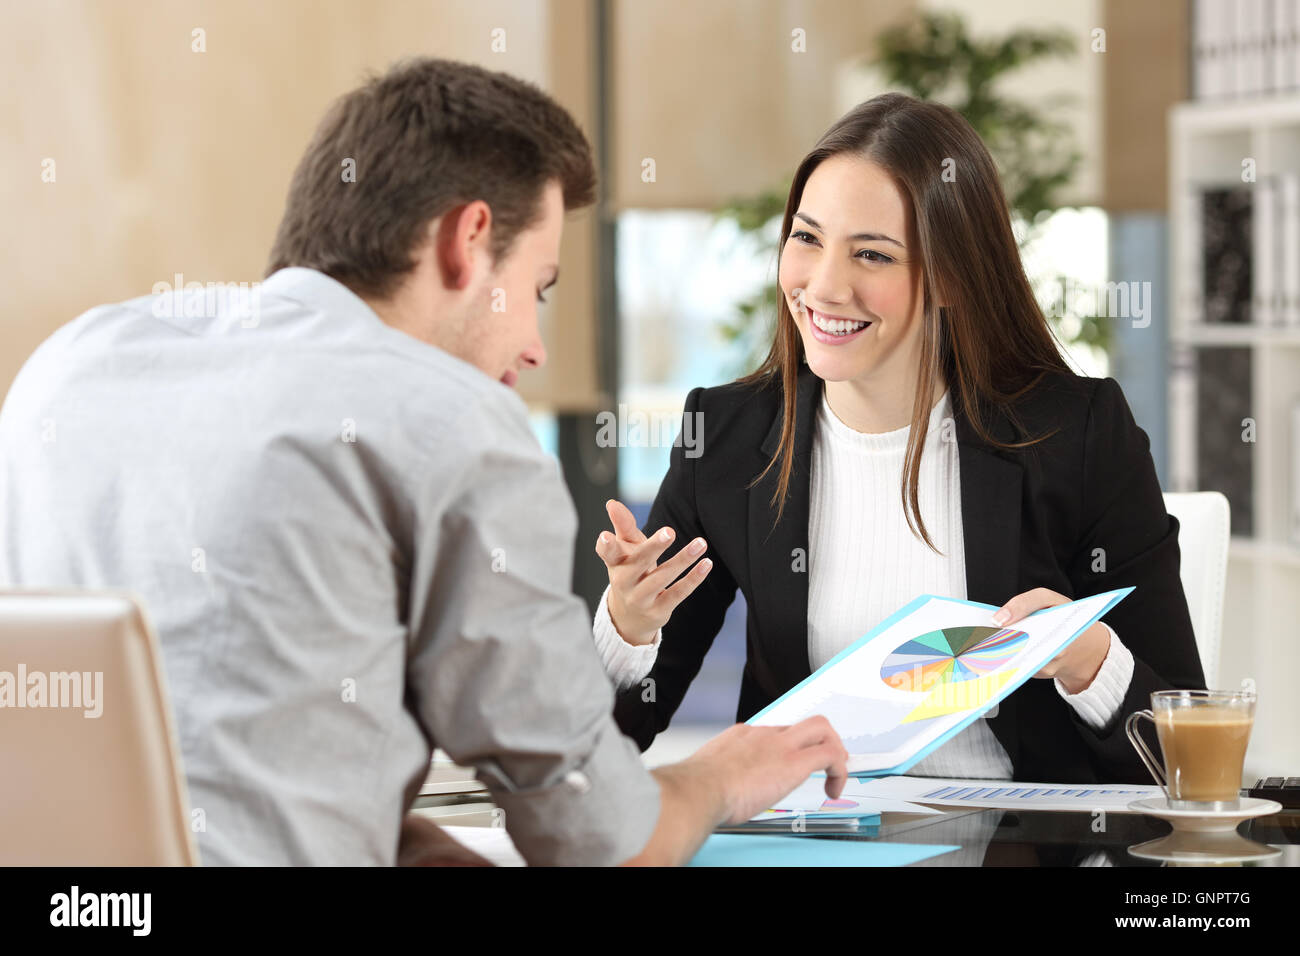 Businesspeople smiling coworking commenting and showing growth graphic and taking a business conversation in an - Stock Image